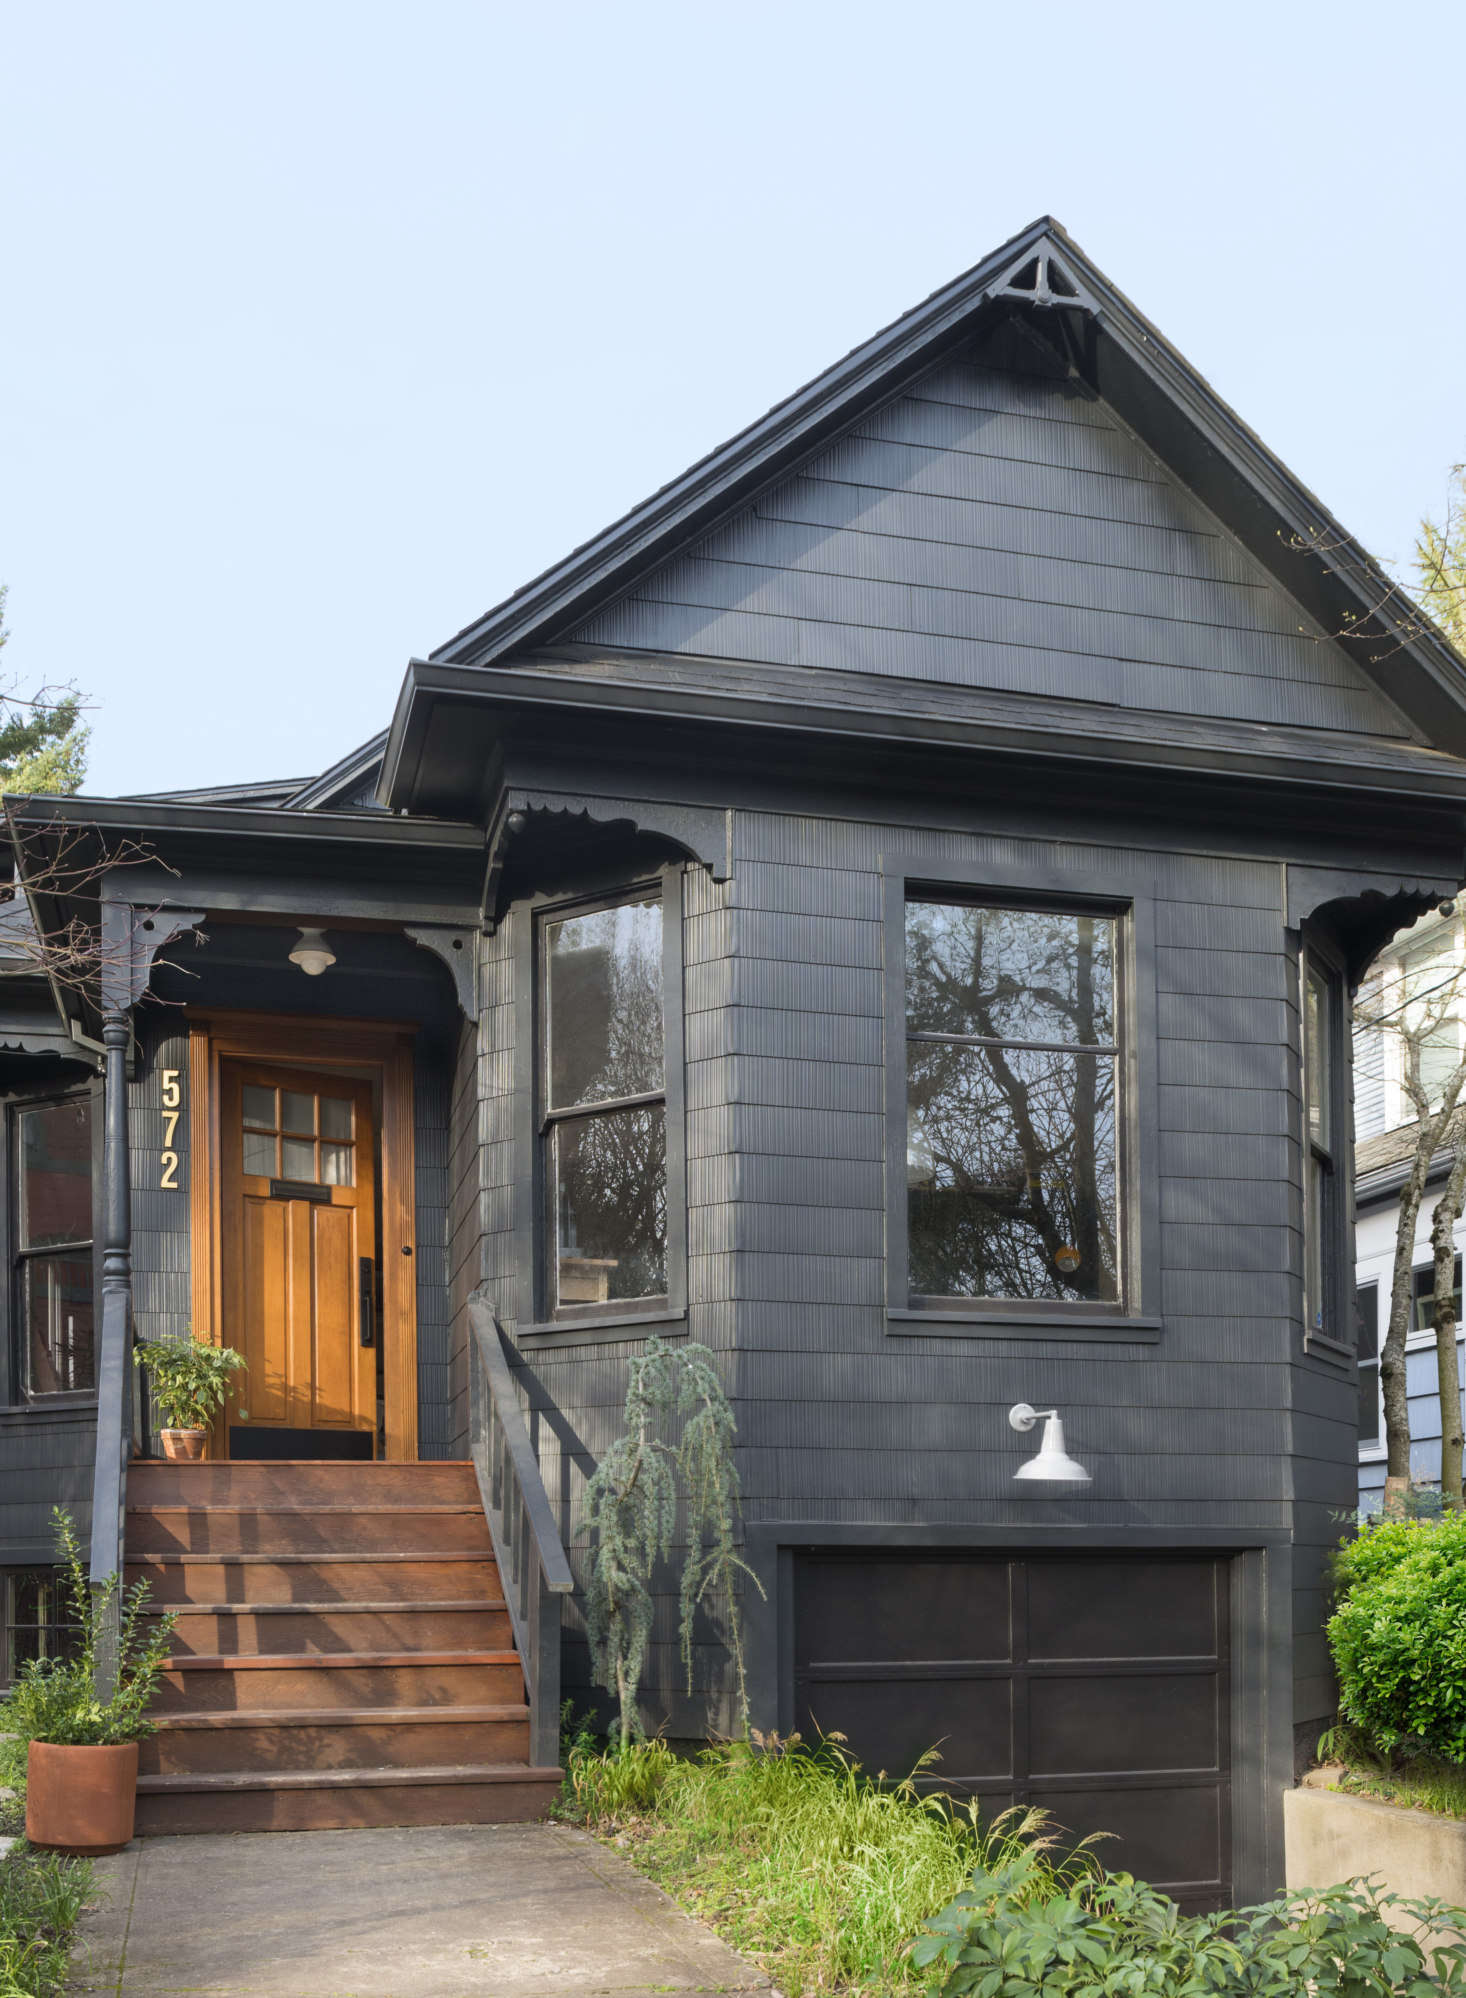 The exterior is painted in Graphite with Onyx trim, both from Benjamin Moore  (to see the transformative powers of paint, scroll to the end for a Before shot).